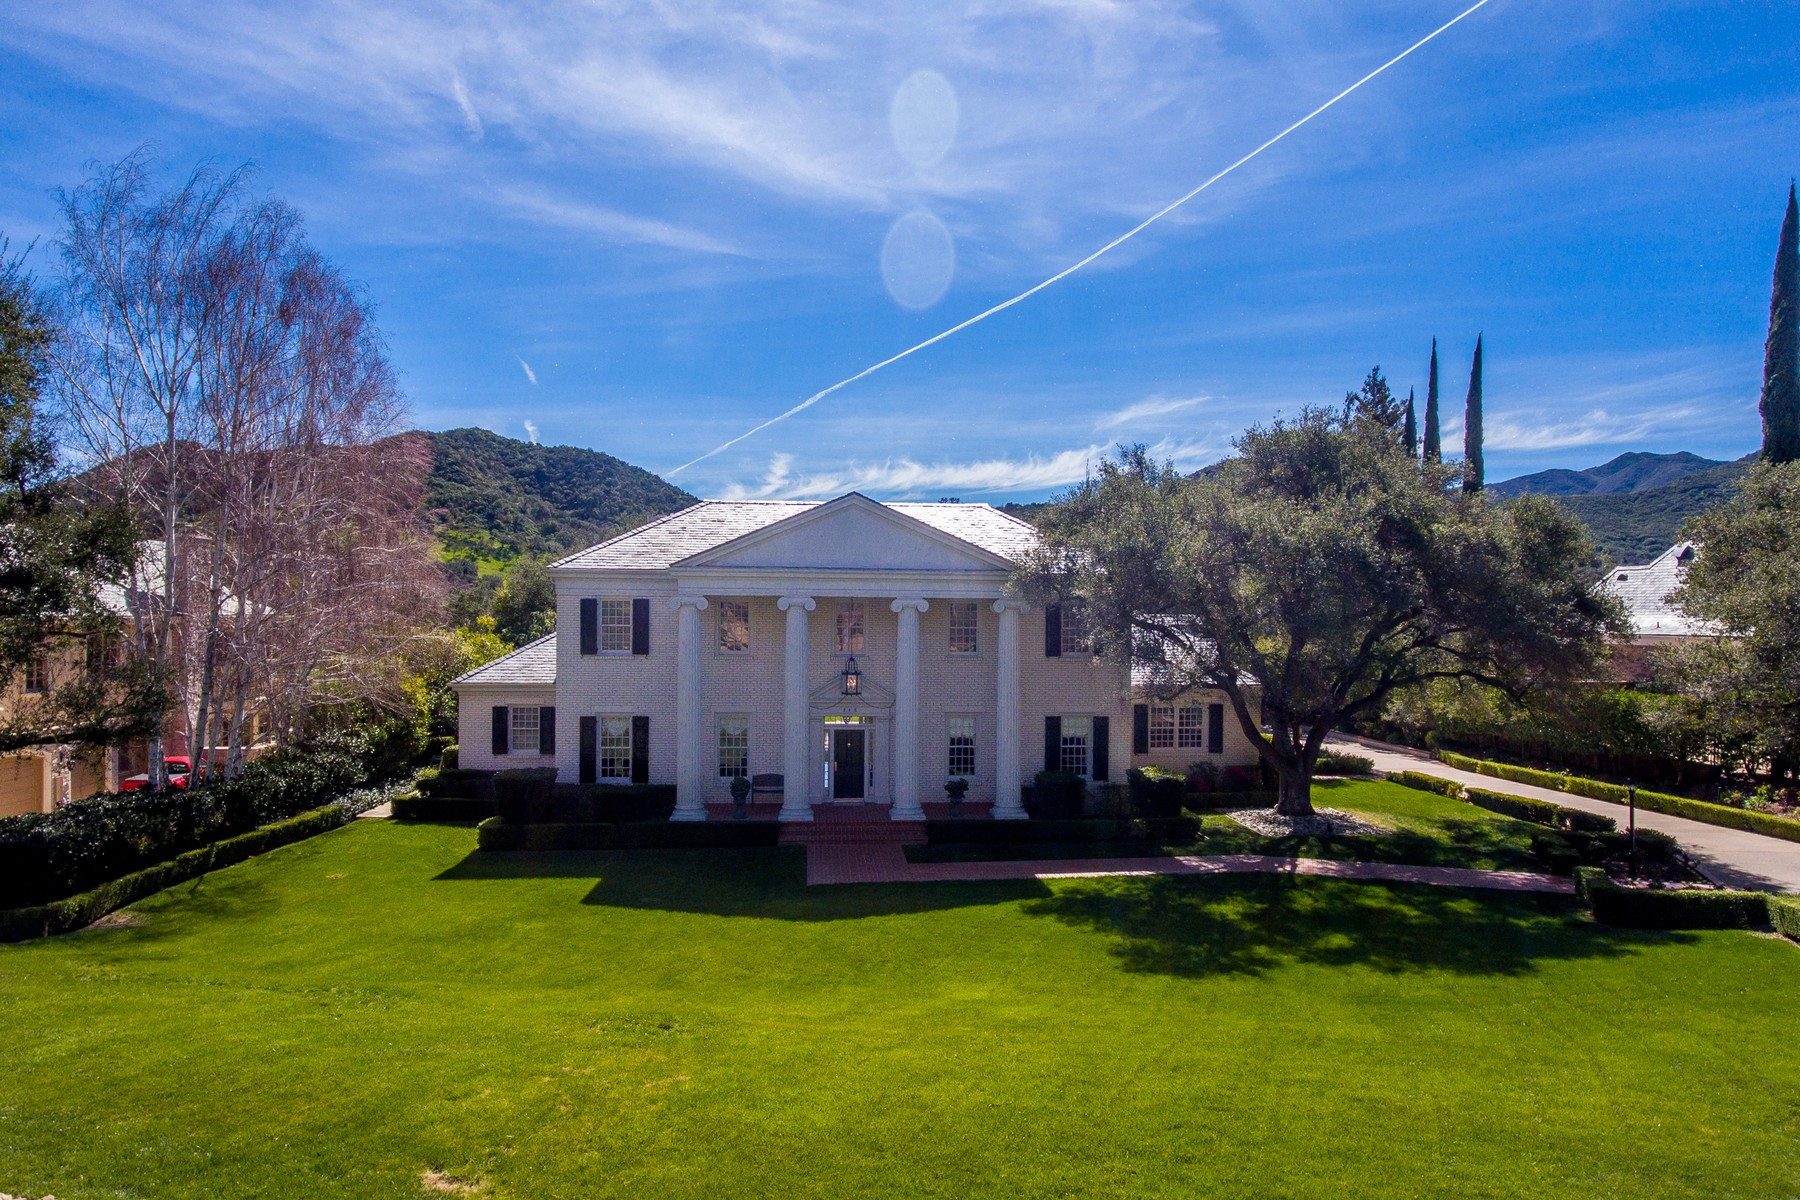 Casa Unifamiliar por un Venta en 248 W Stafford Road Thousand Oaks, California, 91361 Estados Unidos